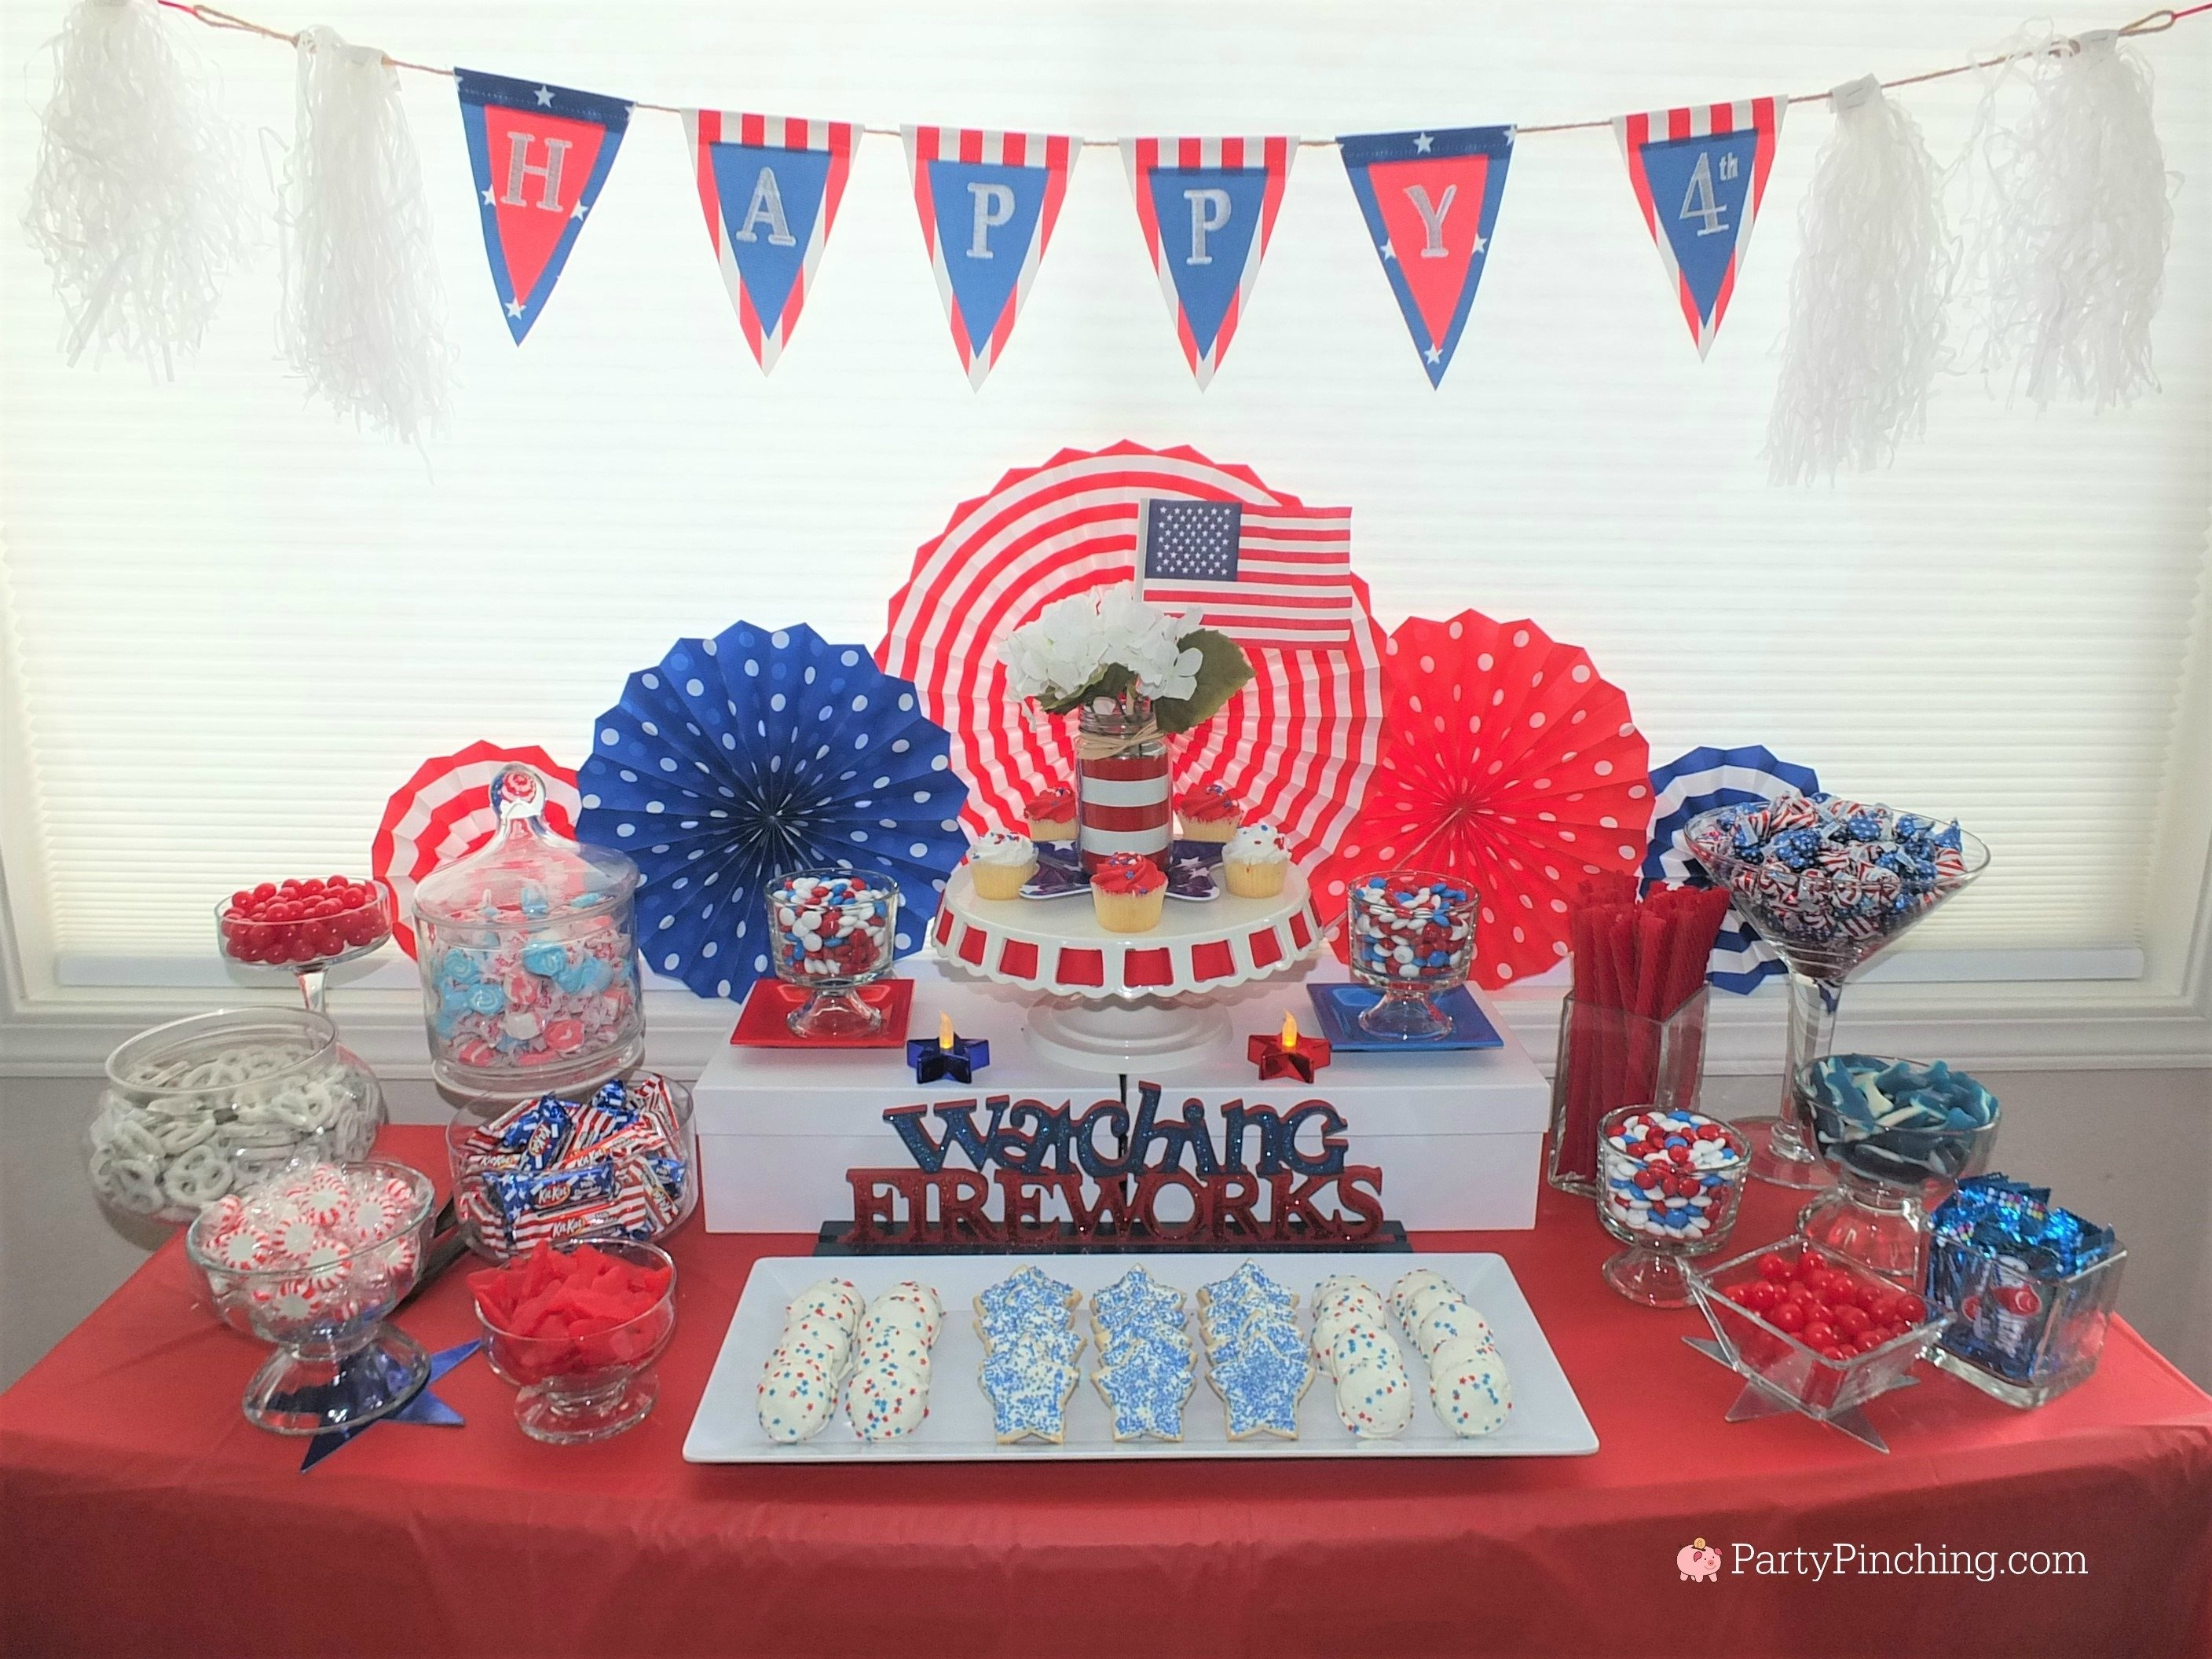 10 Beautiful Red White And Blue Party Ideas 4th of july dessert ideas easy patriotic candy buffet red white 2020